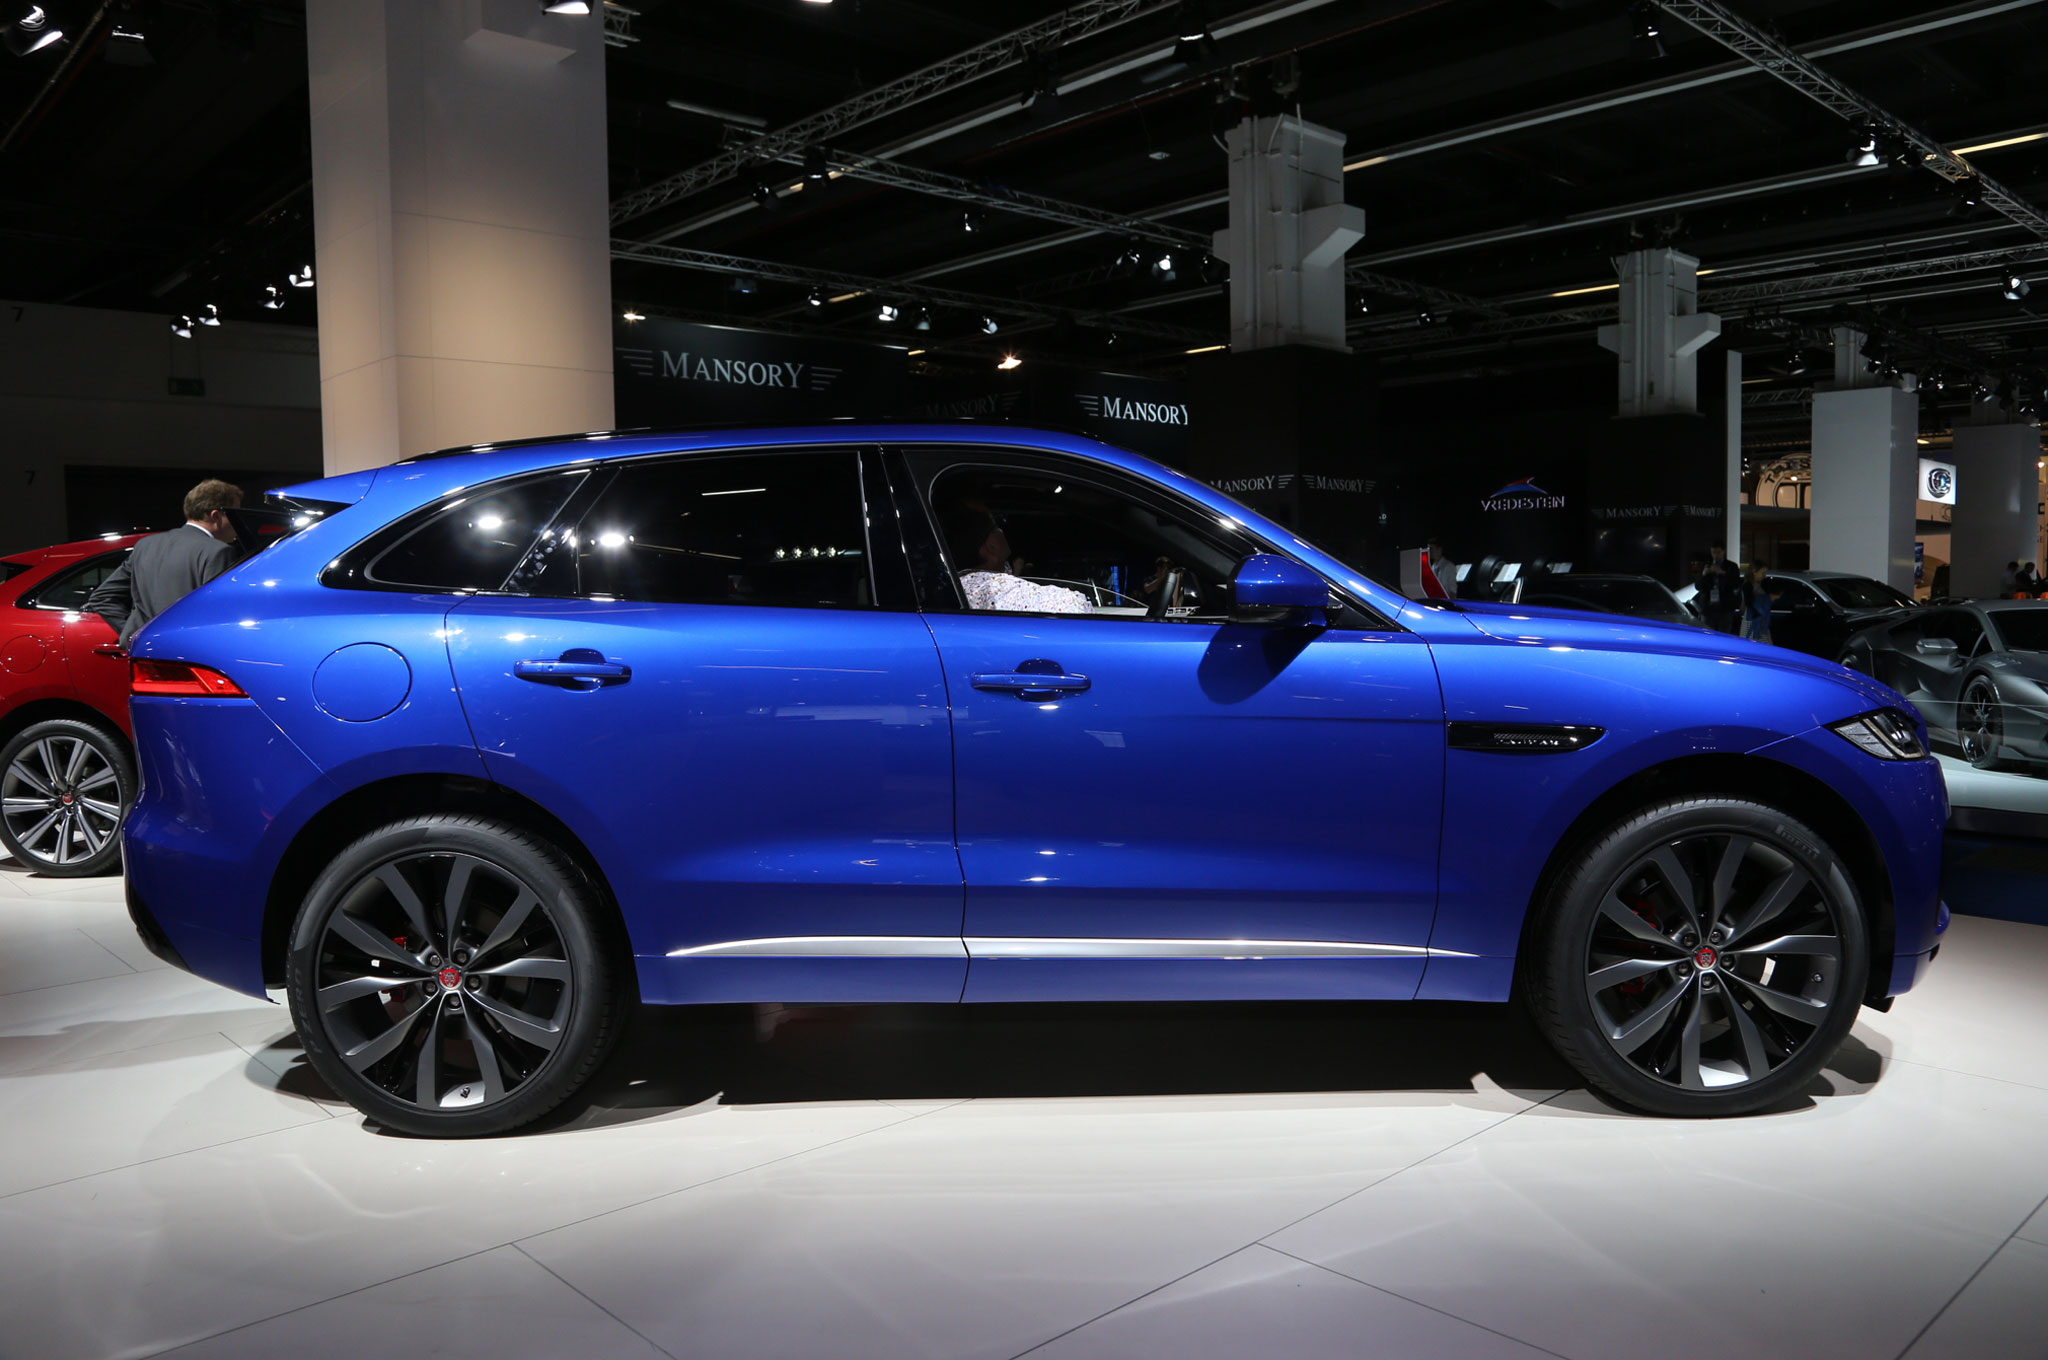 2017 jaguar f pace online configurator confirms u s lineup pricing. Black Bedroom Furniture Sets. Home Design Ideas